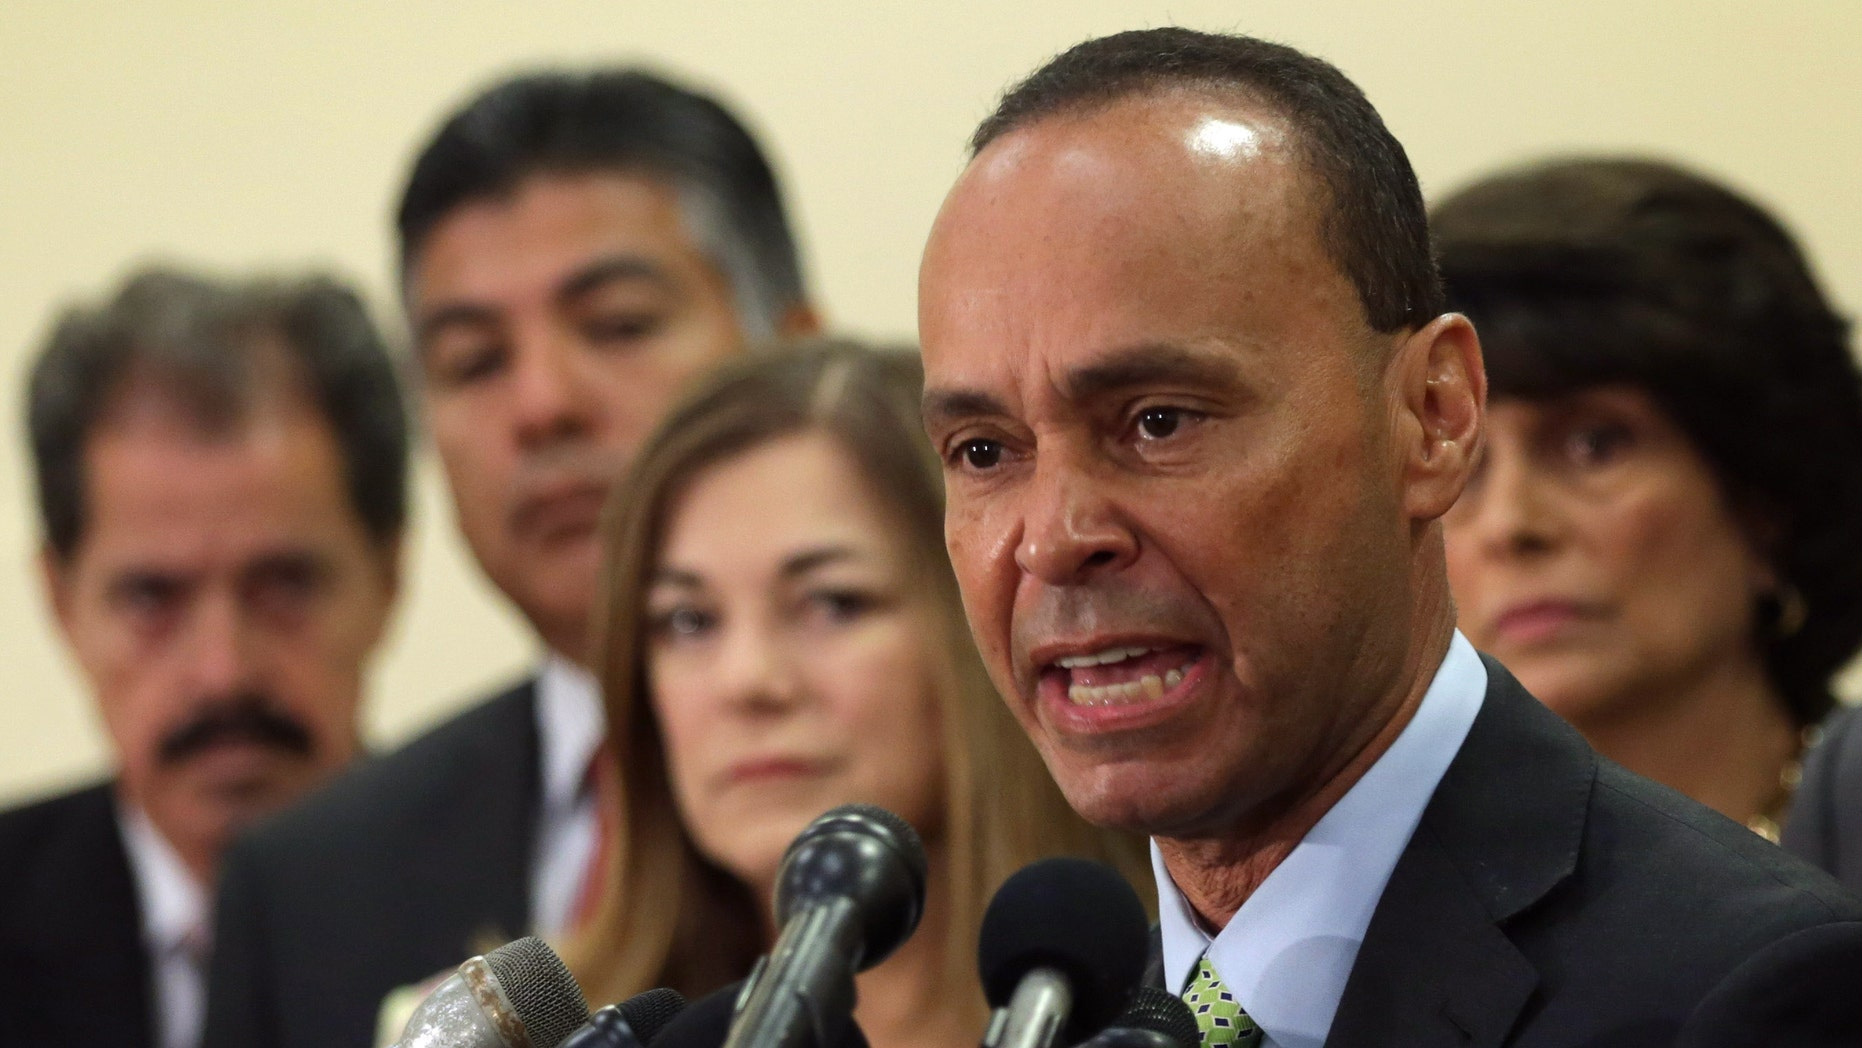 Rep. Gutierrez during a news conference July 11, 2014 on Capitol Hill in Washington, DC.